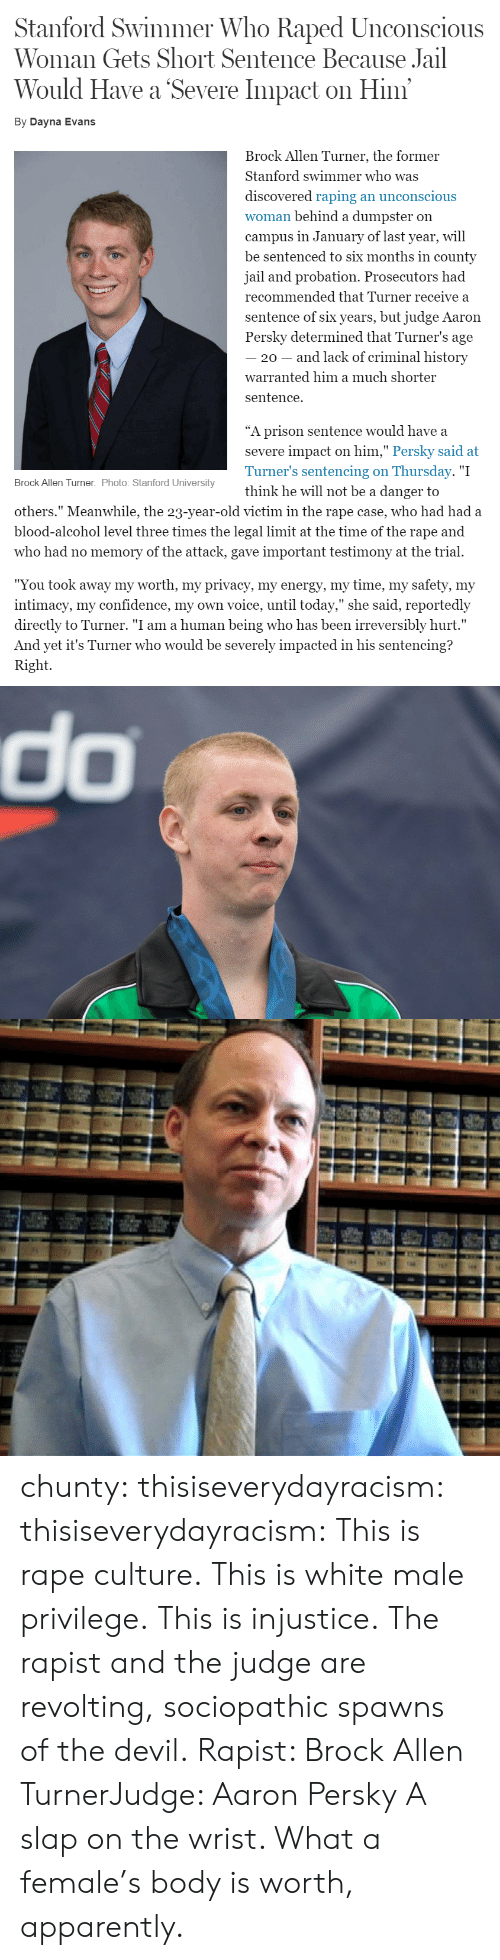 """Apparently, Confidence, and Jail: Stanford Swimmer Who Raped Unconscious  Woman Gets Short Sentence Because Jail  Would Have a Severe Impact on Him  By Dayna Evans  Brock Allen Turner, the former  Stanford swimmer who was  discovered raping an unconscious  woman behind a dumpster on  campus in January of last year, will  be sentenced to six months in county  jail and probation. Prosecutors had  recommended that Turner receive a  sentence of six years, but judge Aaron  Persky determined that Turner's age  20 - and lack of criminal history  warranted him a much shorter  sentence.  """"A prison sentence would have a  severe impact on him,"""" Persky said at  Turner's sentencing on Thursday. """"I  think he will not be a danger to  Brock Allen Turner. Photo: Stanford University  others."""" Meanwhile, the 23-year-old victim in the rape case, who had had a  blood-alcohol level three times the legal limit at the time of the rape and  who had no memory of the attack, gave important testimony at the trial.  """"You took away my worth, my privacv, my energv, my time, my safetv, my  intimacy, my confidence, my own voice, until today,"""" she said, reportedly  directly to Turner. """"I am a human being who has been irreversibly hurt.""""  And yet it's Turner who would be severely impacted in his sentencing?  Right.   do chunty:  thisiseverydayracism:  thisiseverydayracism:  This is rape culture.  This is white male privilege.  This is injustice.  The rapist and the judge are revolting, sociopathic spawns of the devil.  Rapist: Brock Allen TurnerJudge: Aaron Persky  A slap on the wrist. What a female's body is worth, apparently."""